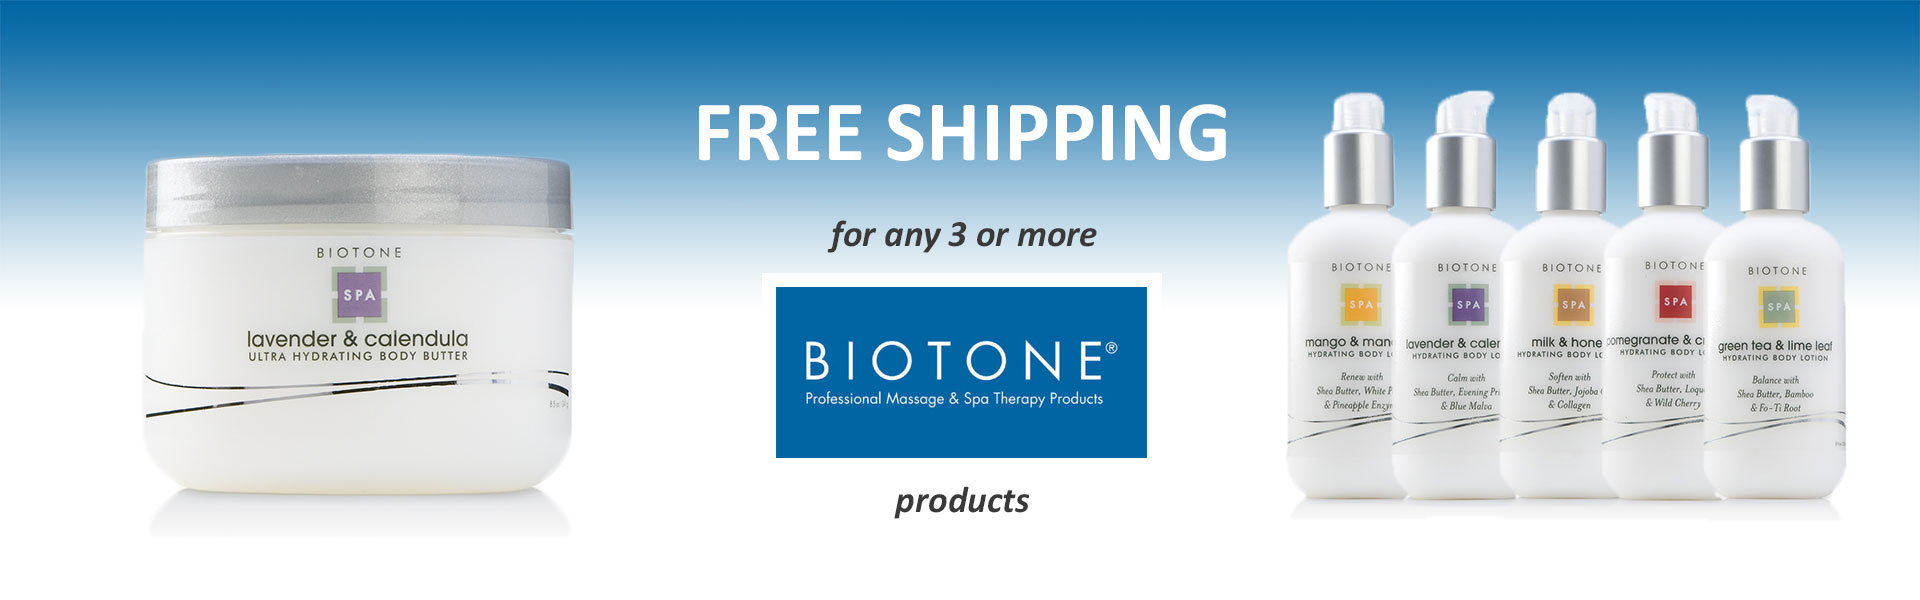 Free Shipping for any 3 or more BIOTONE products